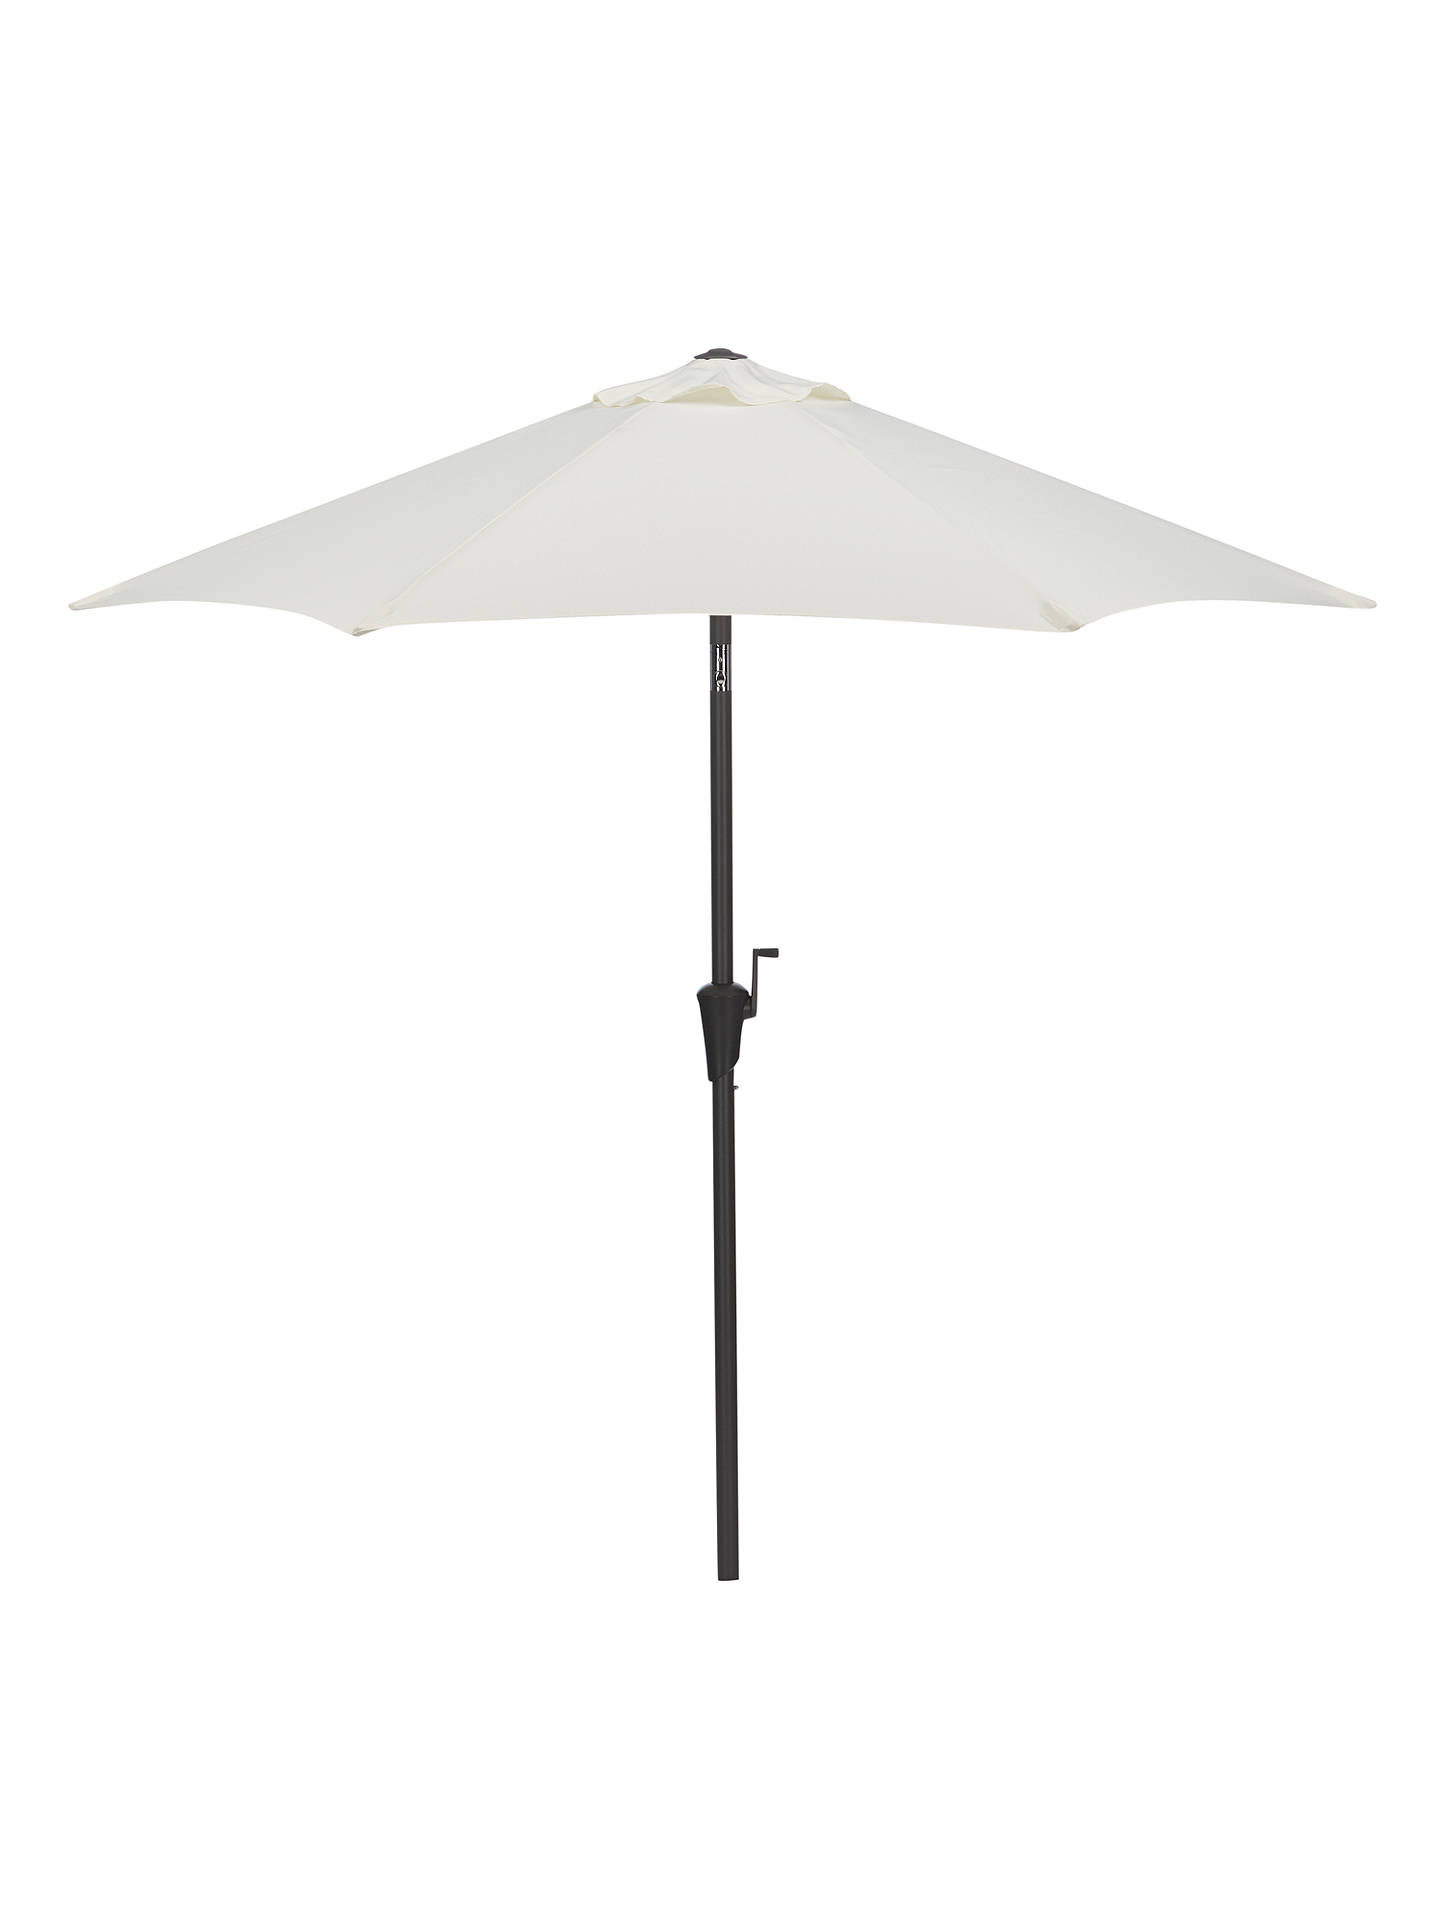 John Lewis & Partners 2.2m Parasol, Oyster